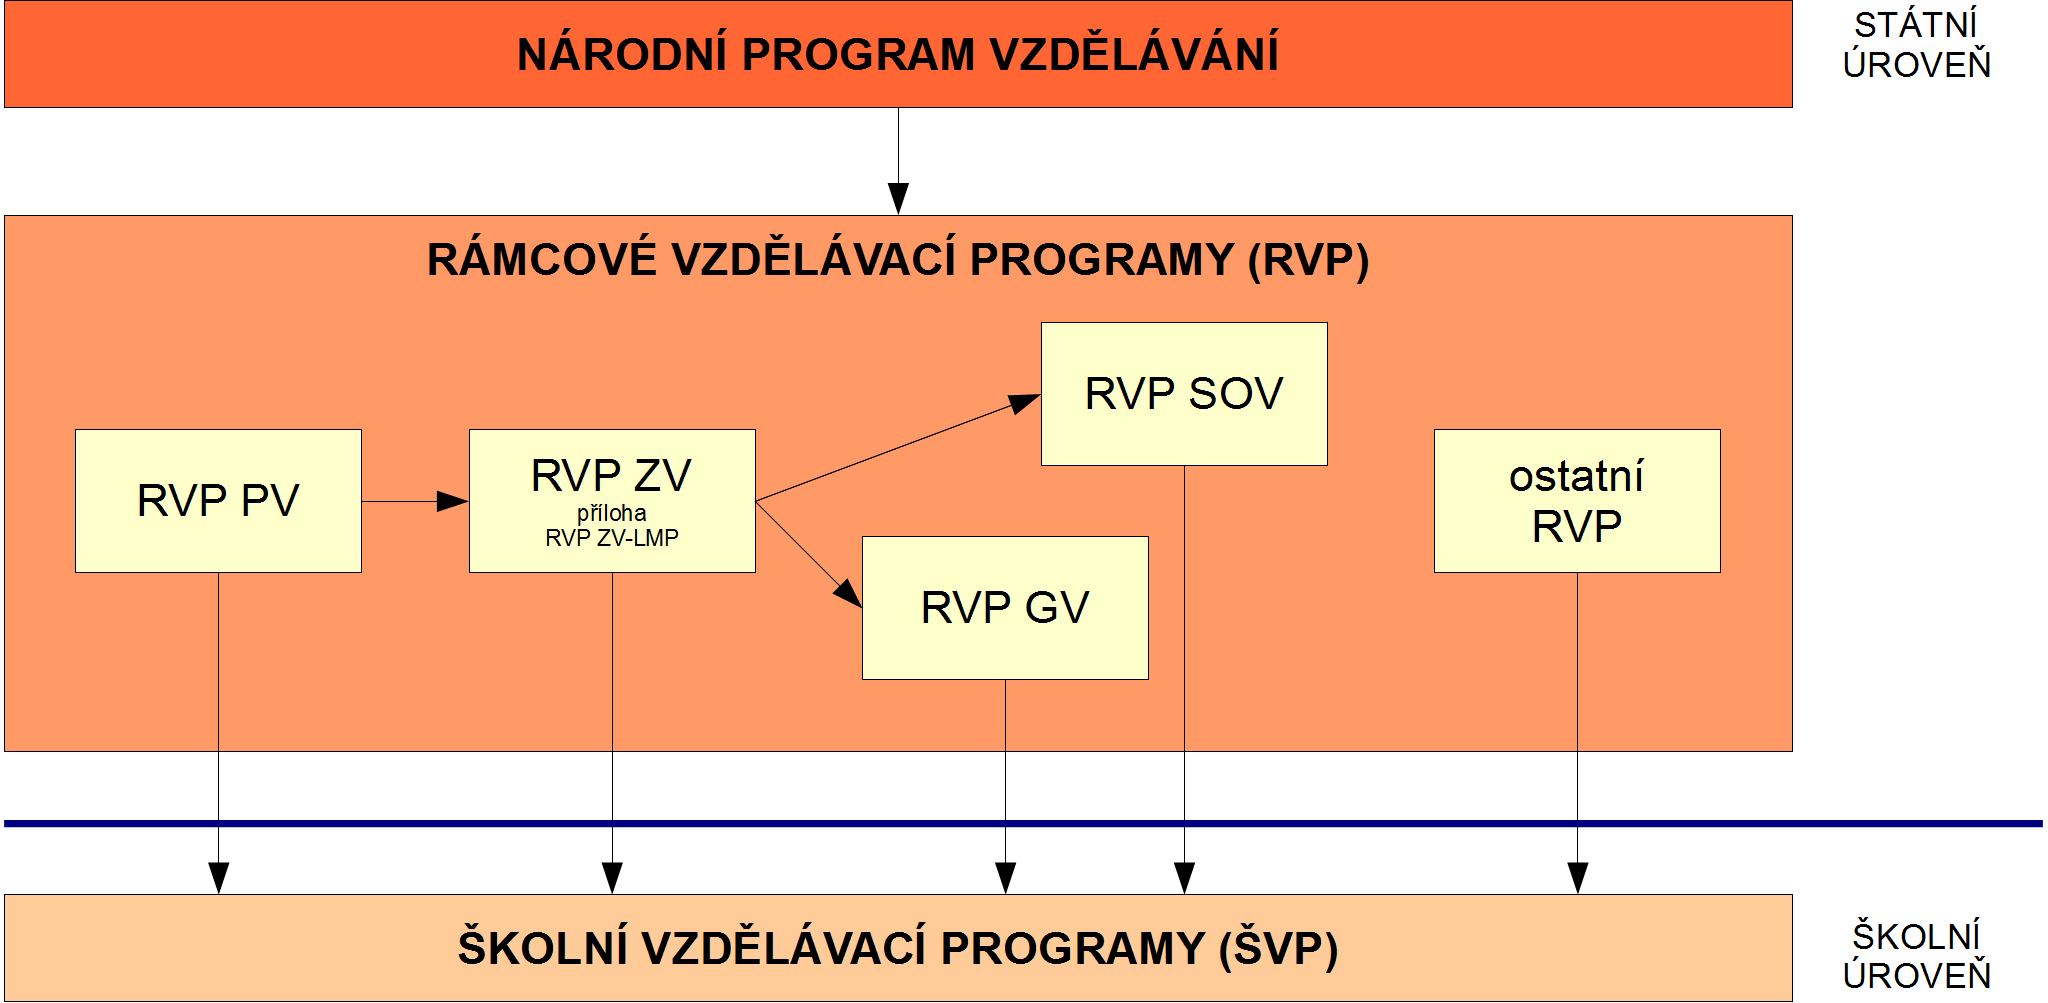 Skolni Vzdelavaci Program Wikipedie